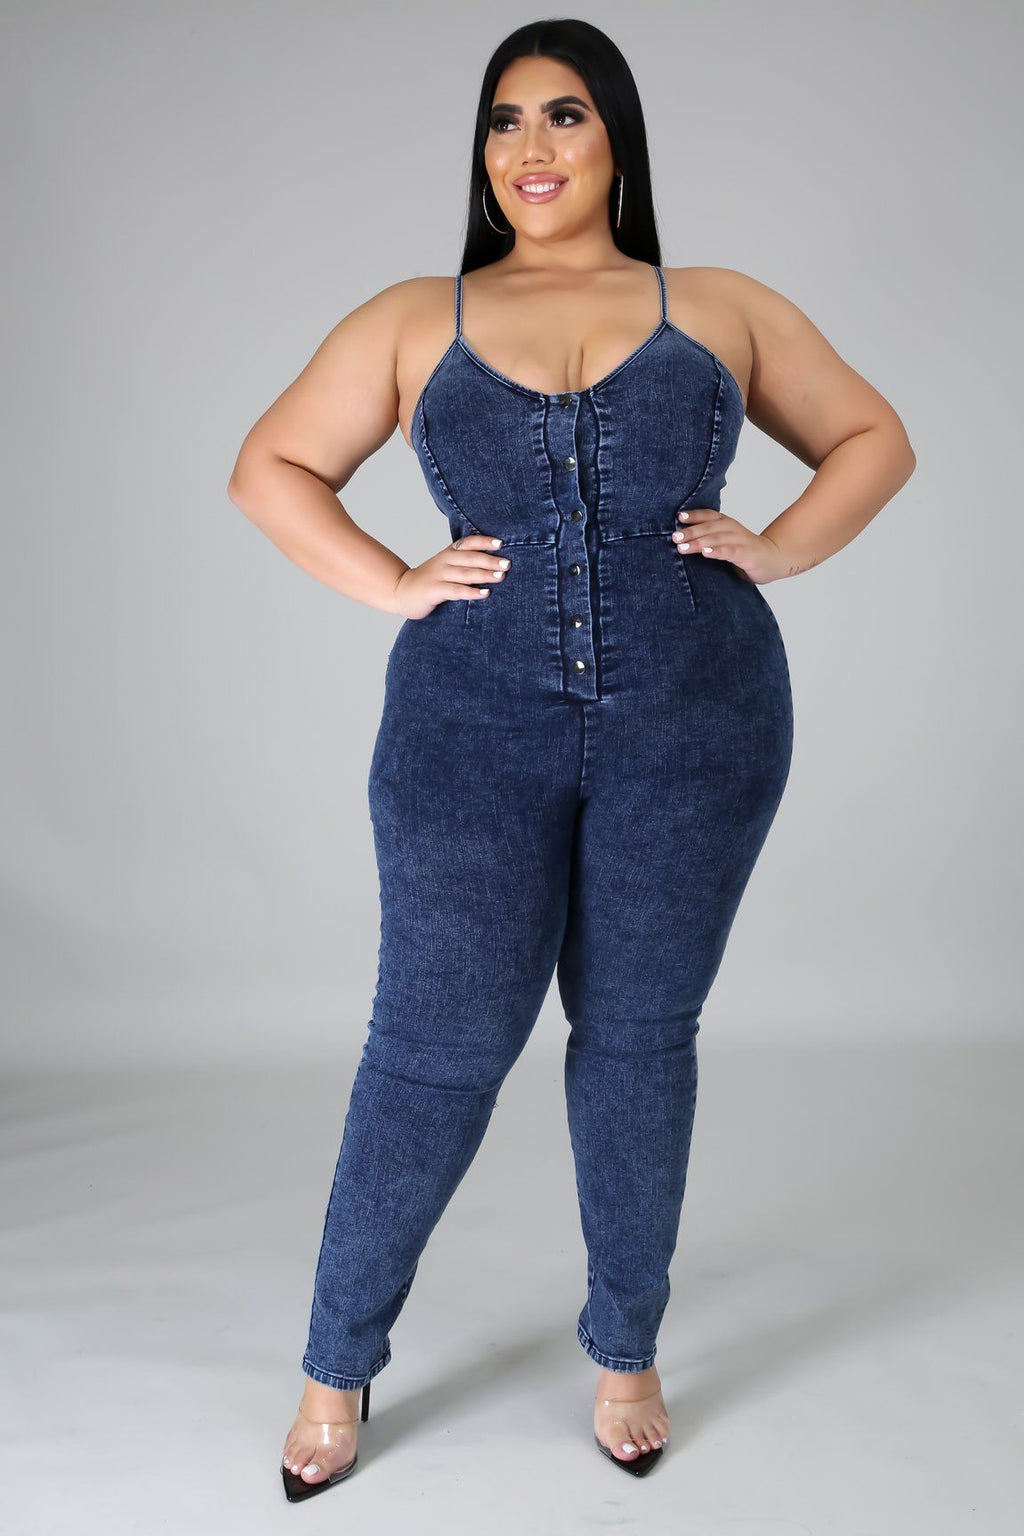 Stick To The Basic Denim Jumpsuit